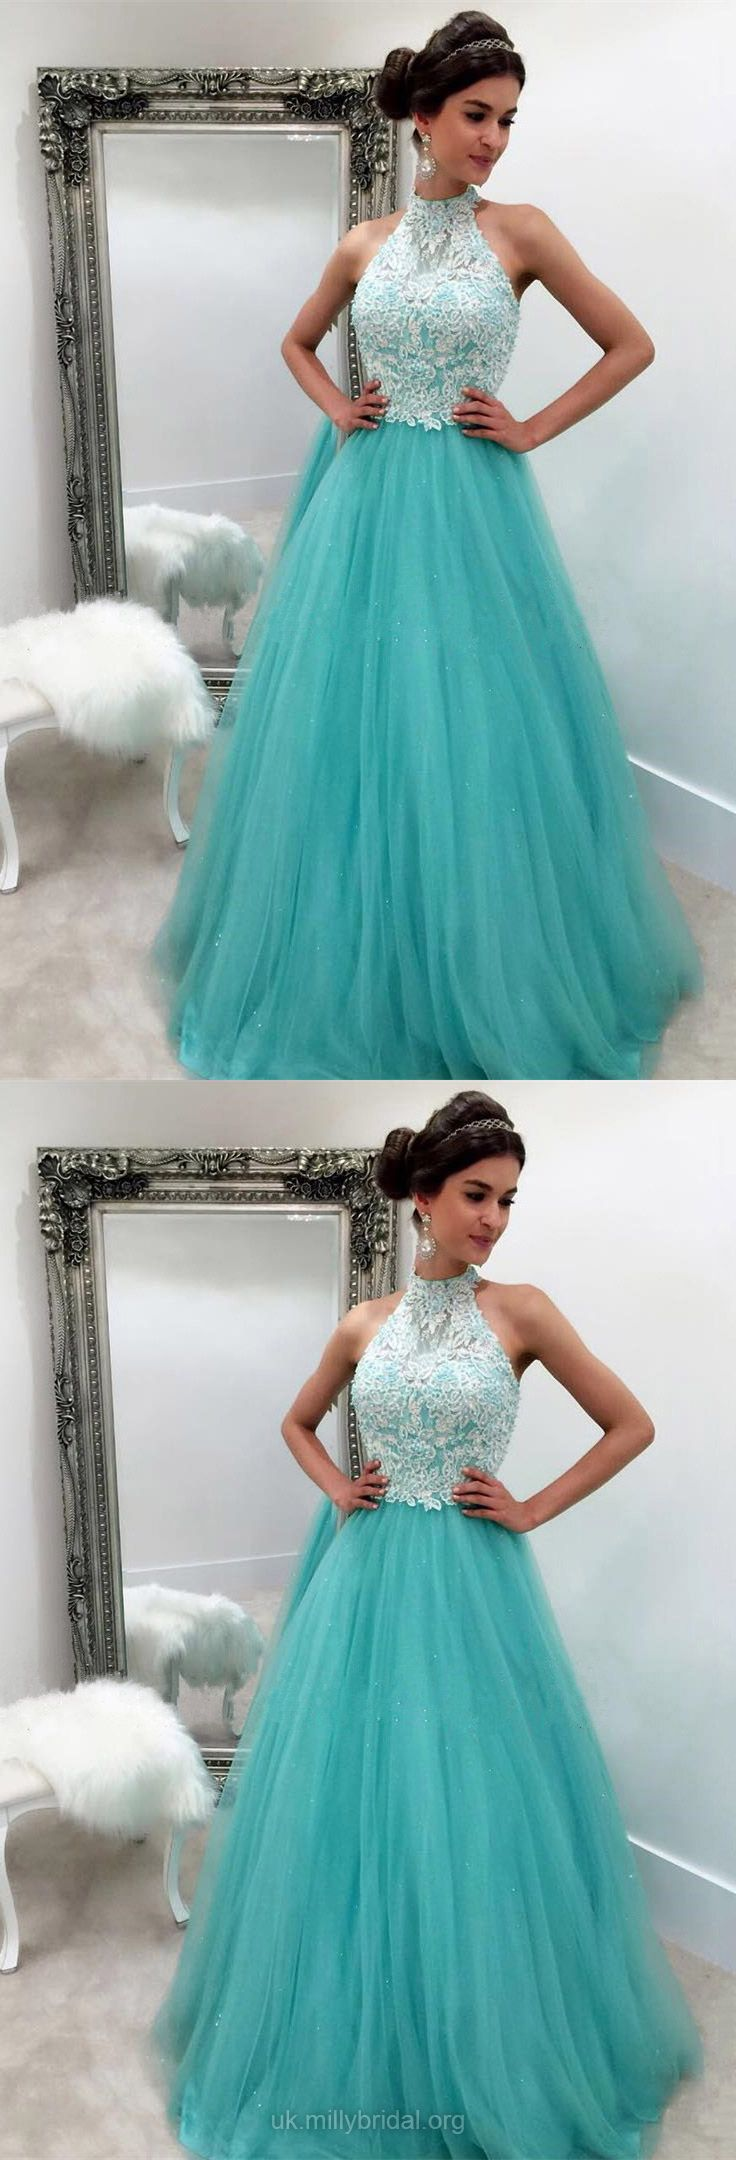 Blue and green prom dress  Long Prom Dresses Classy Green Prom Dresses Lace Modest Formal